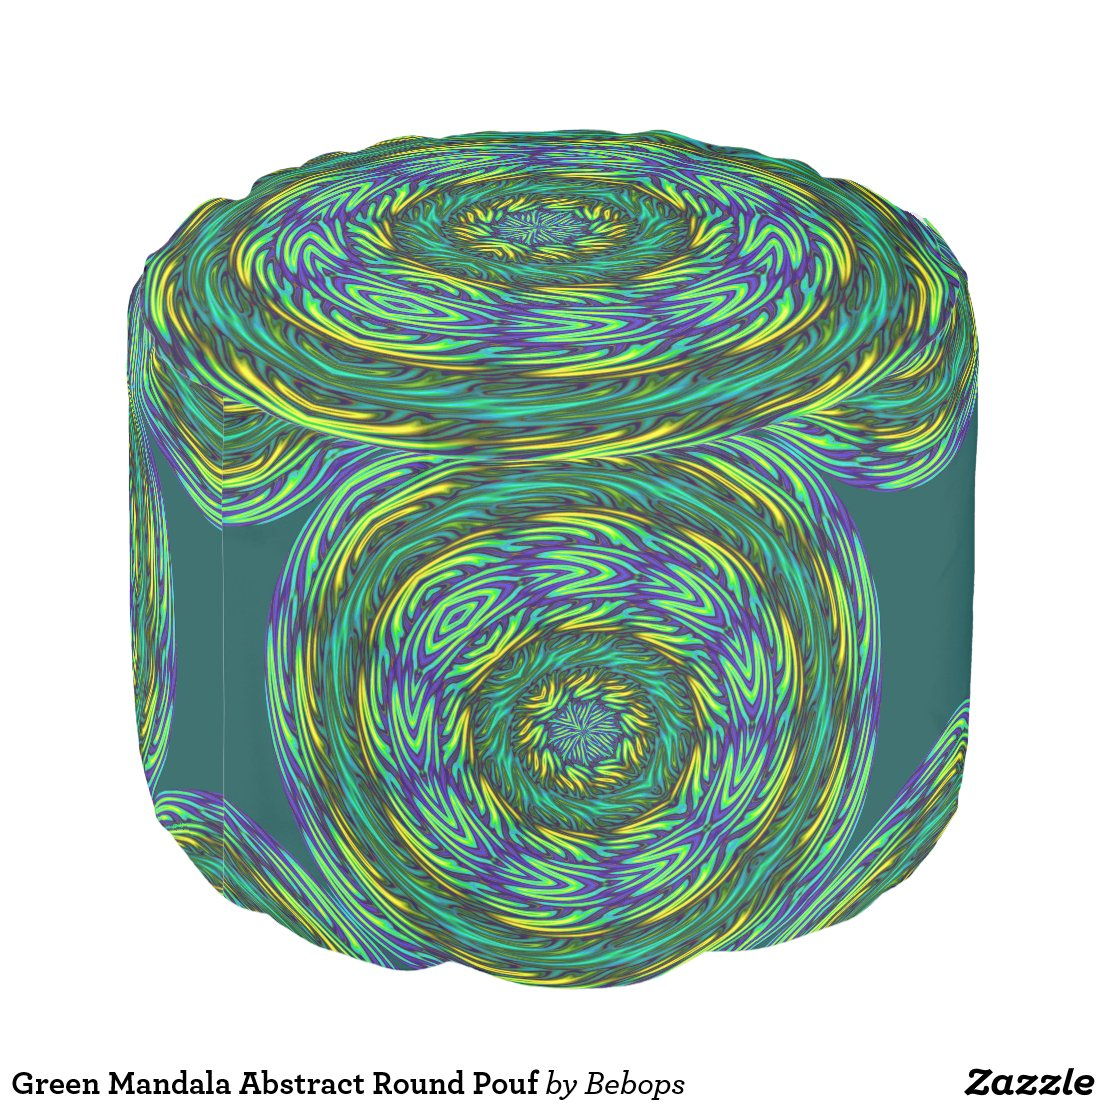 Green Mandala Abstract Round Pouf